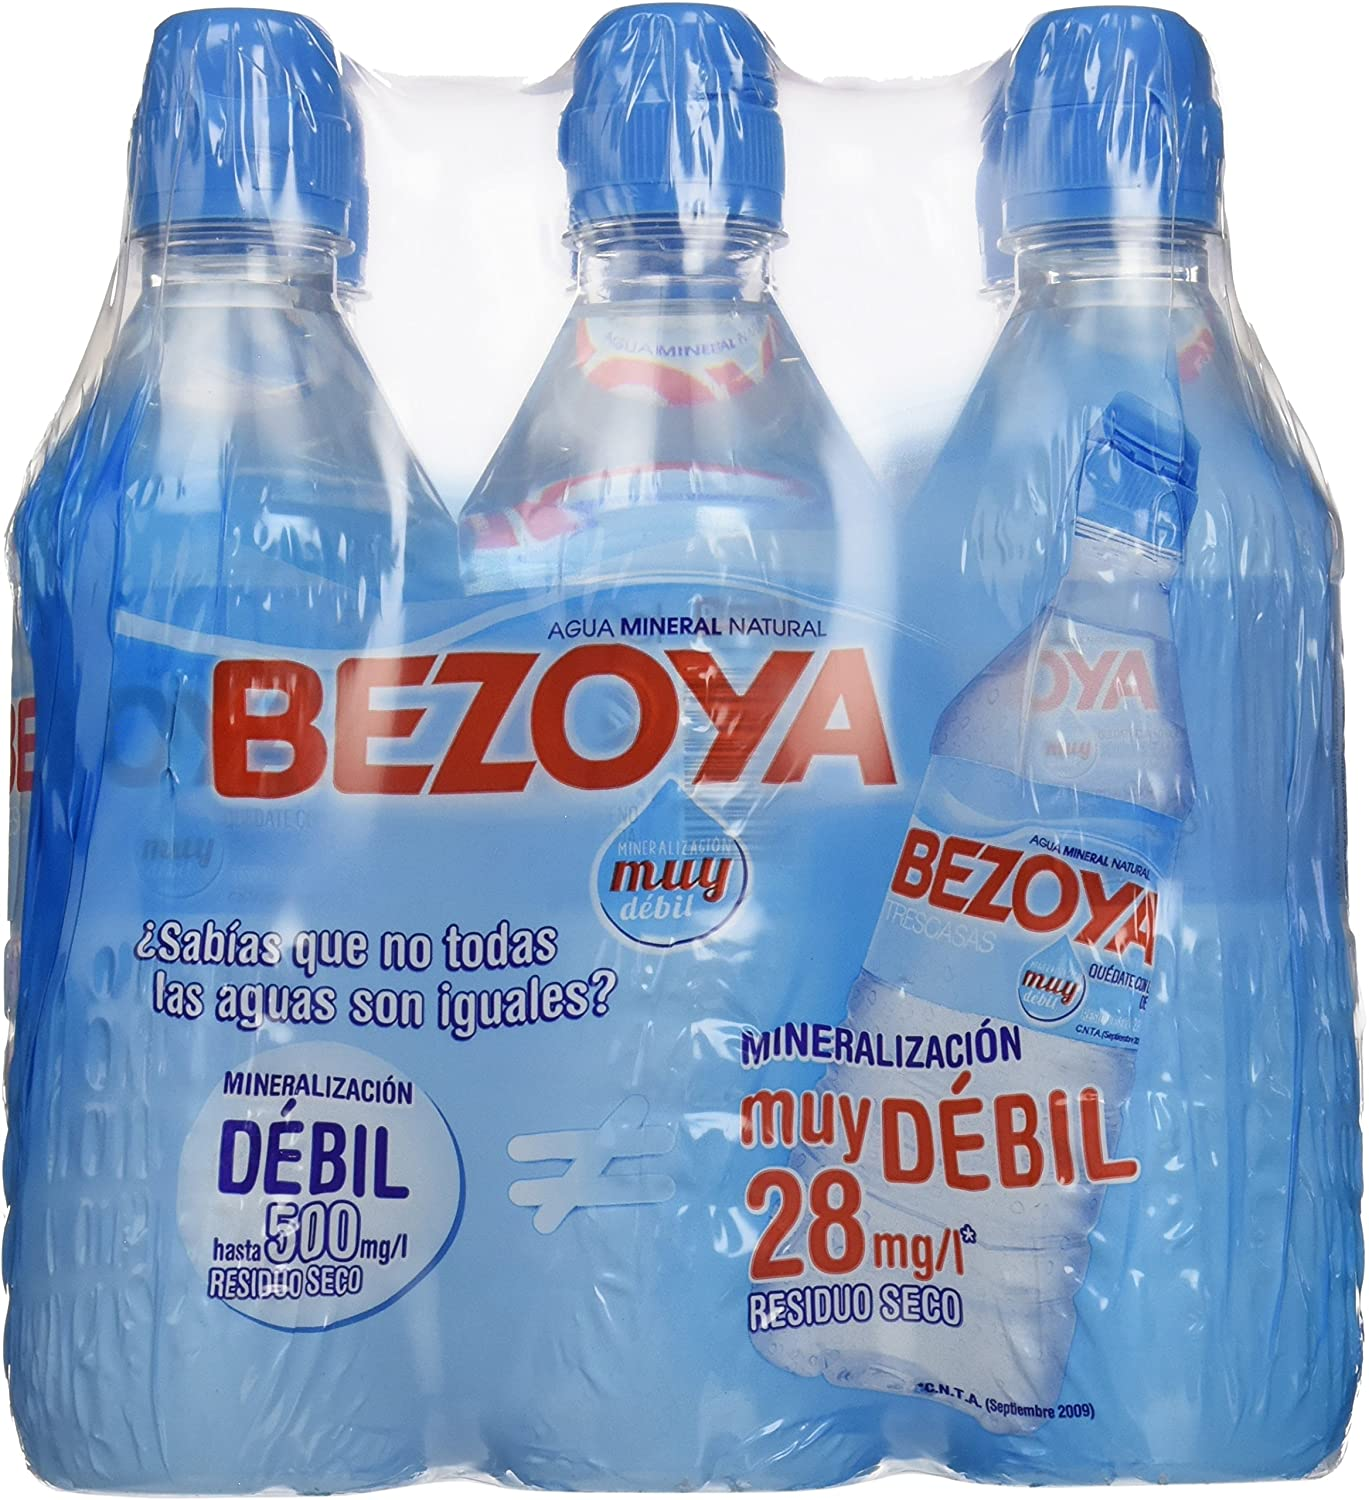 Bezoya Agua - Paquete de 6 x 500 ml - Total: 3000 ml: Amazon.es: Amazon Pantry